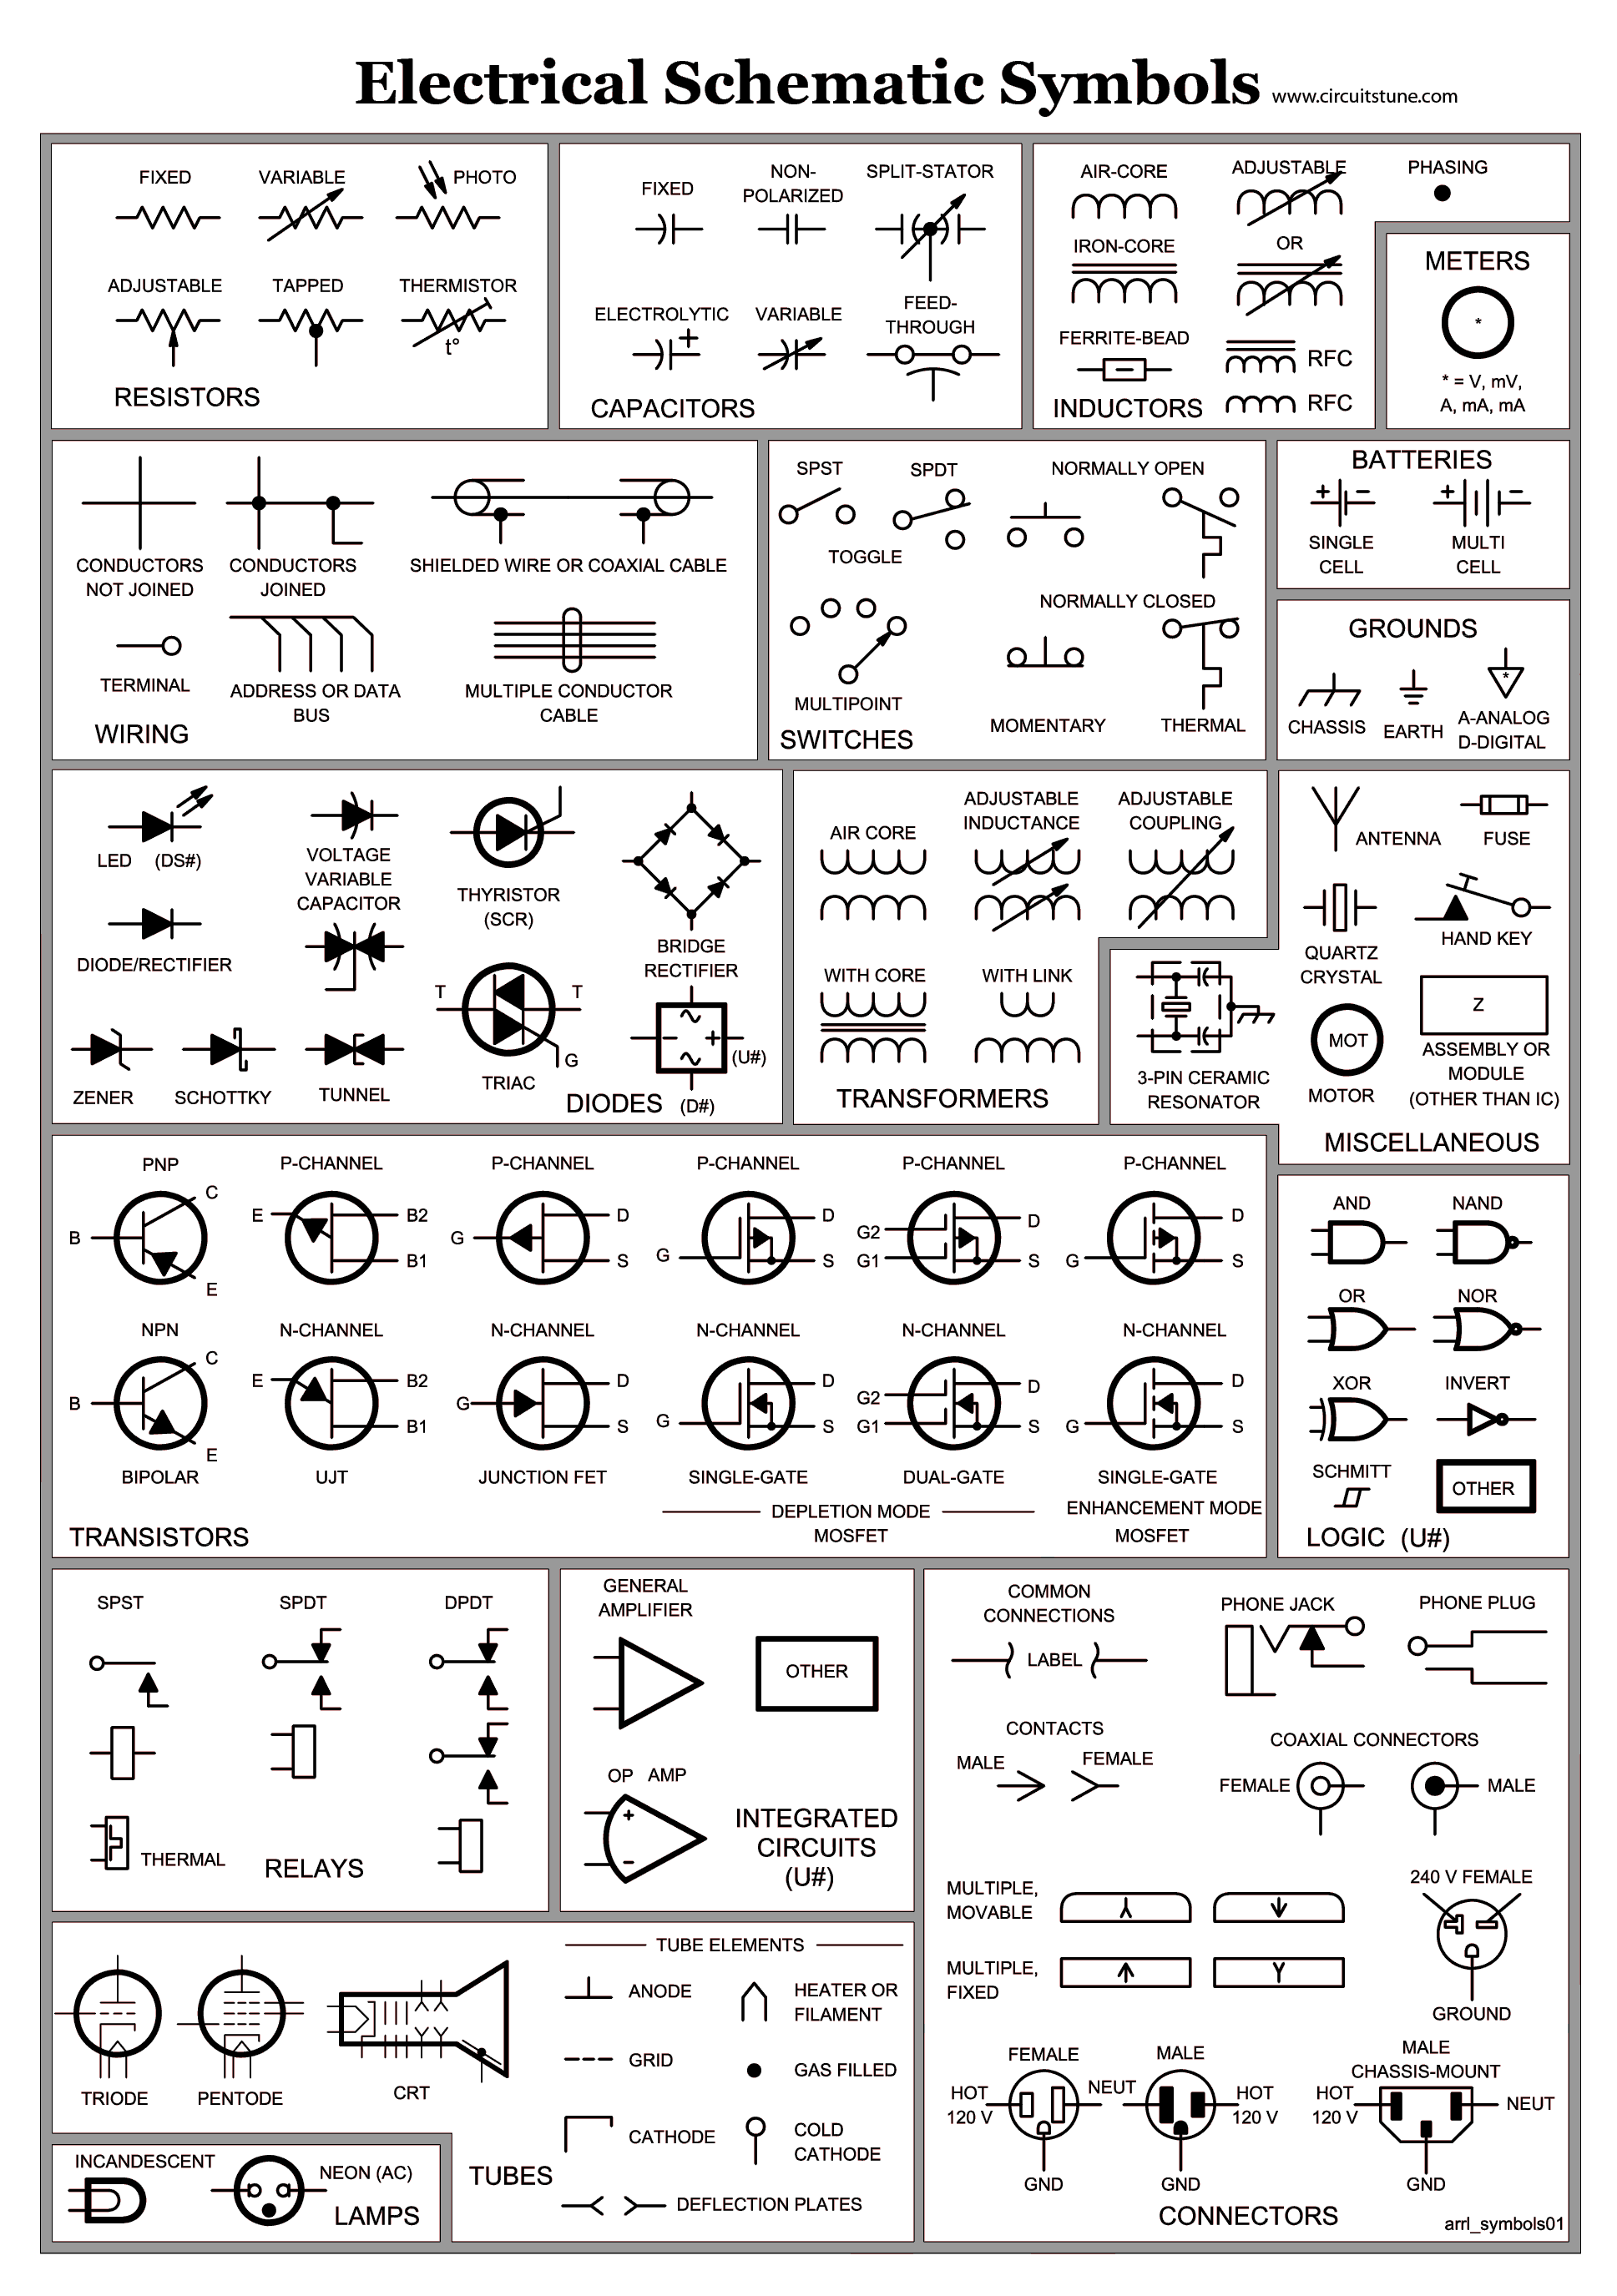 Electric Wiring Diagram Symbols Push Button Schematics Emergency Stop On Circuit Schematic Bmet Wiki Fandom Powered By Wikia Rh Com Symbol Starter Switch